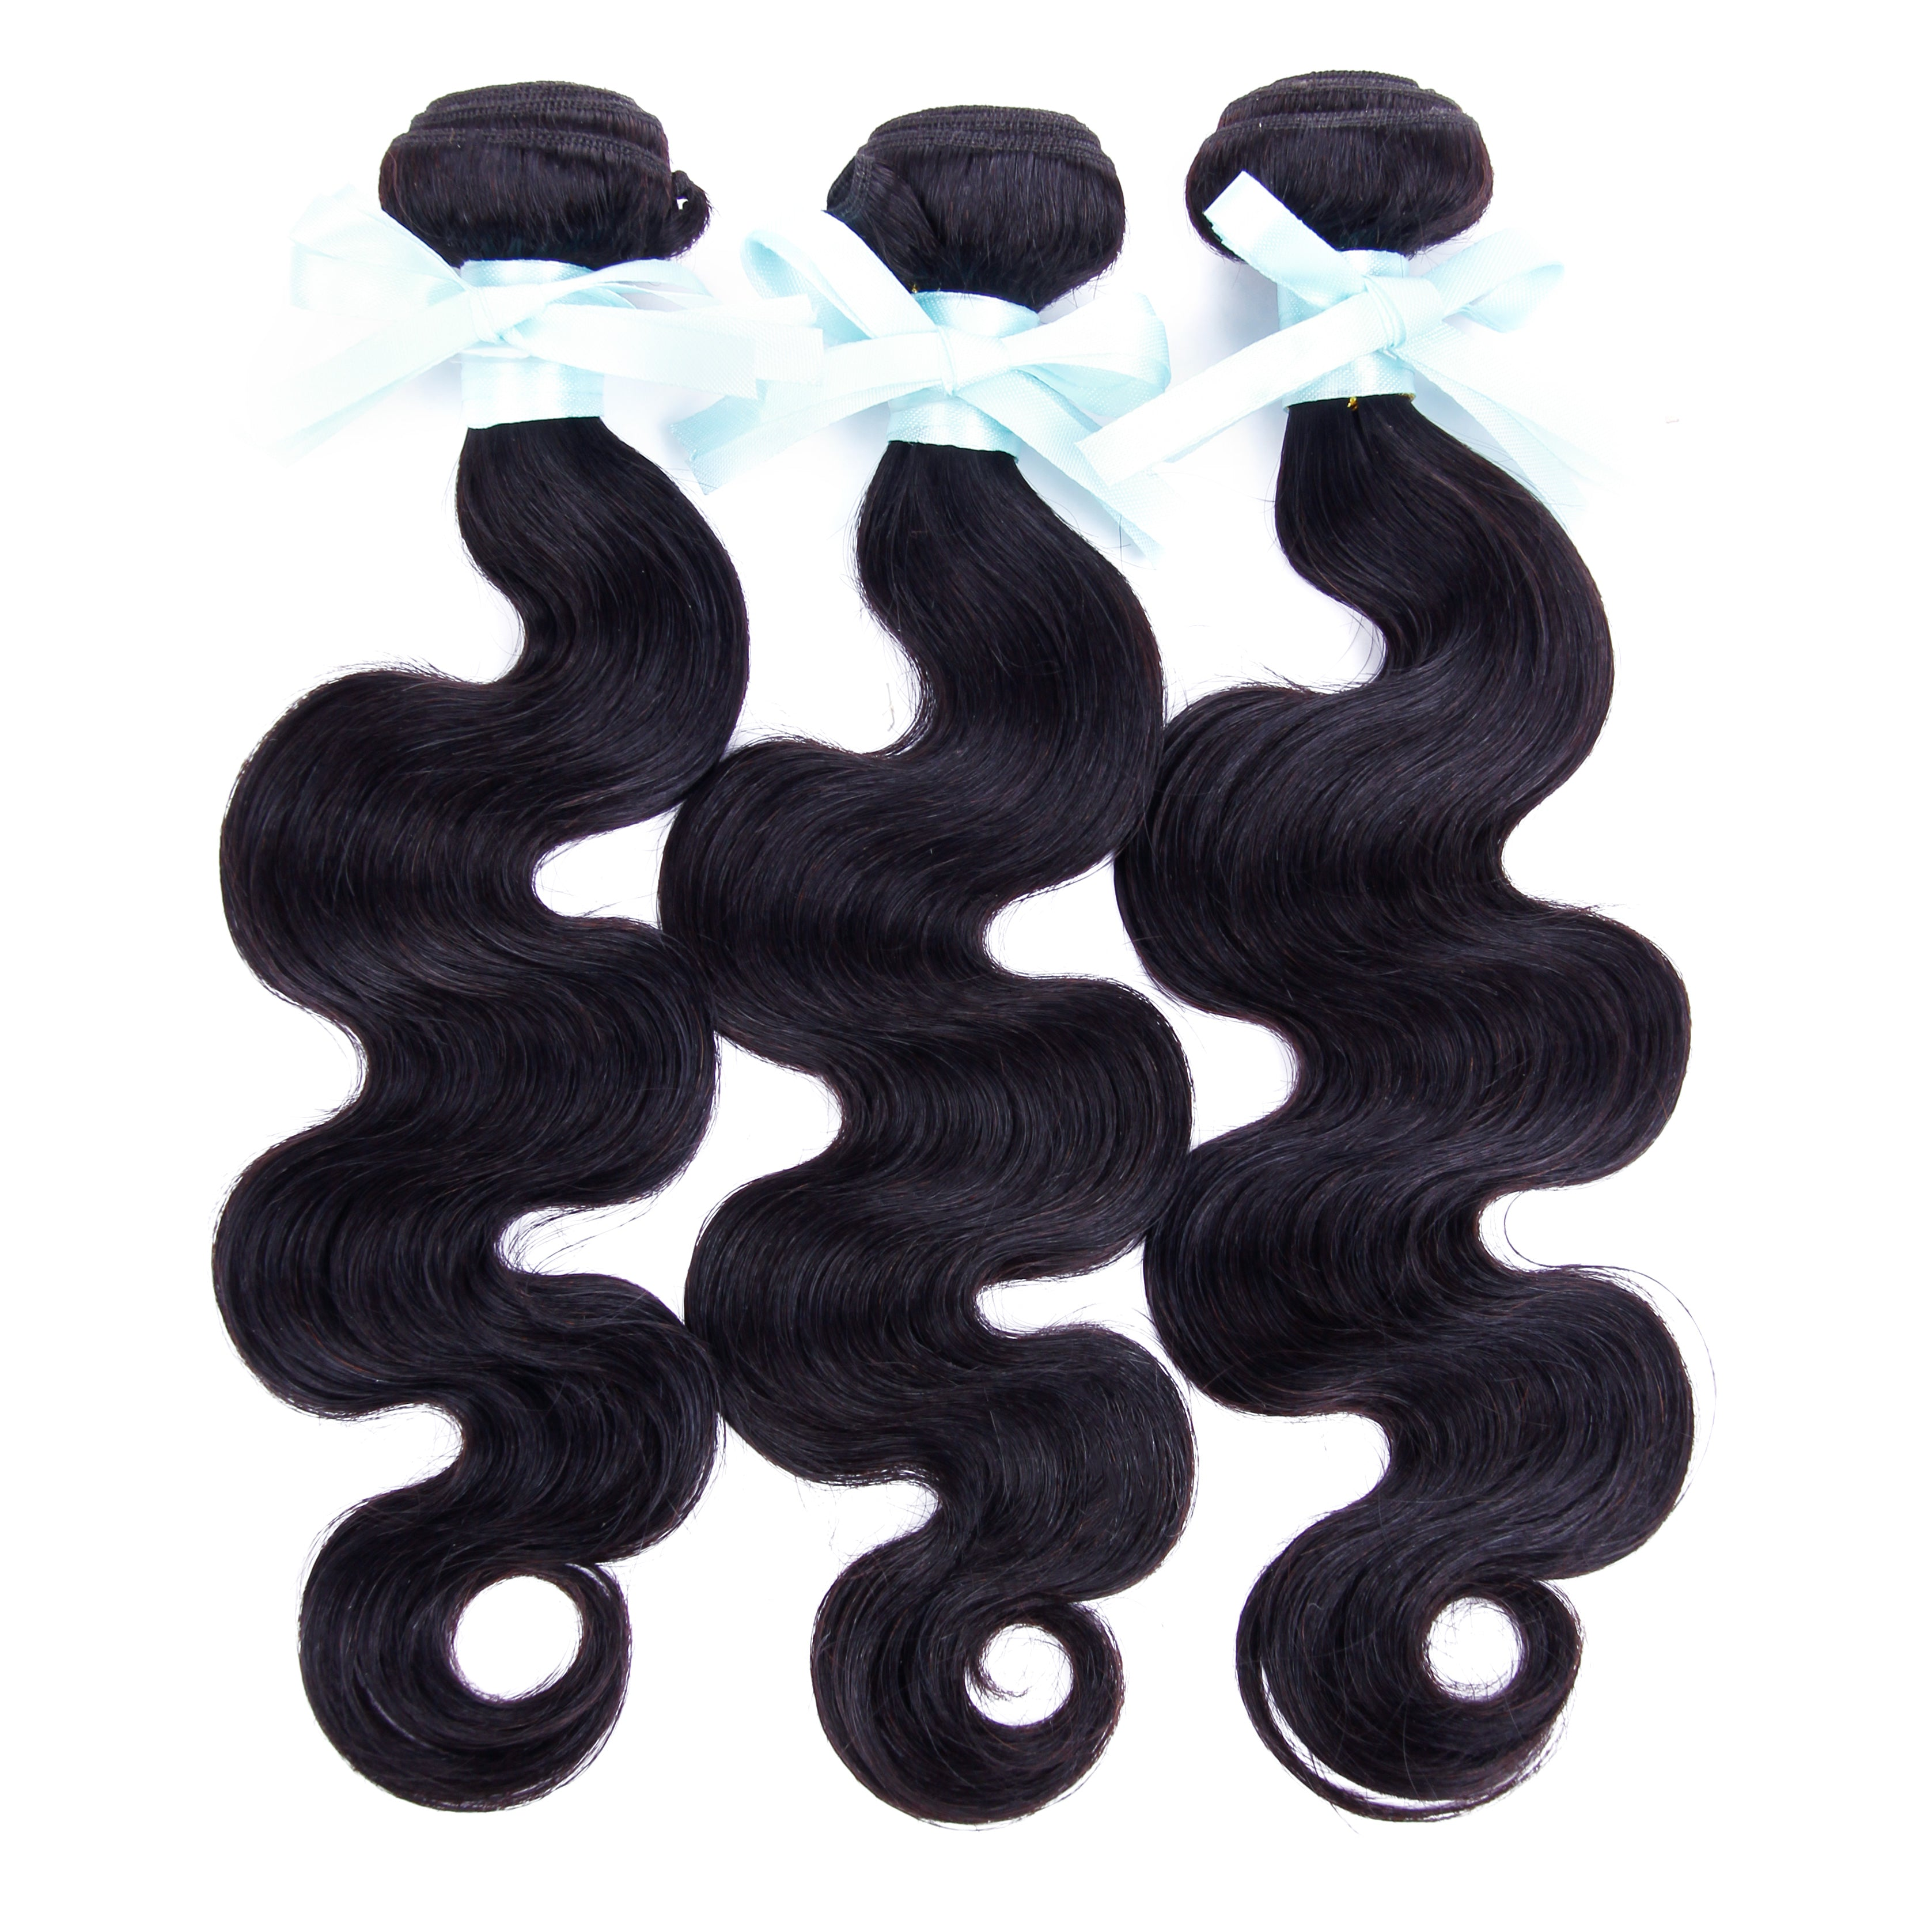 Bundles - Body Wave (3 pcs) - NaturalTrue Hair